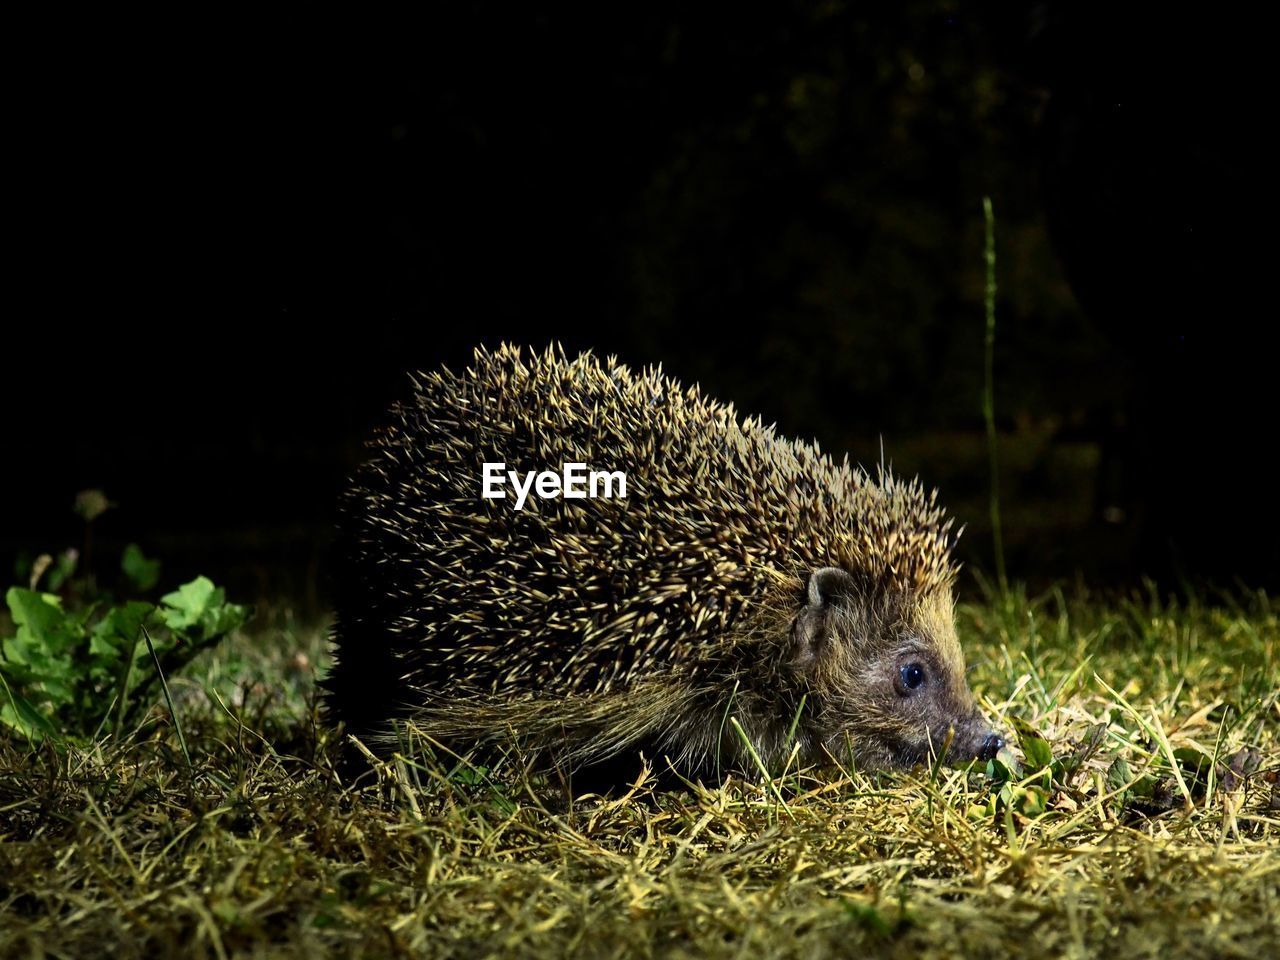 animal, animal themes, animal wildlife, hedgehog, animals in the wild, mammal, one animal, field, no people, night, vertebrate, nature, land, plant, close-up, spiked, outdoors, grass, selective focus